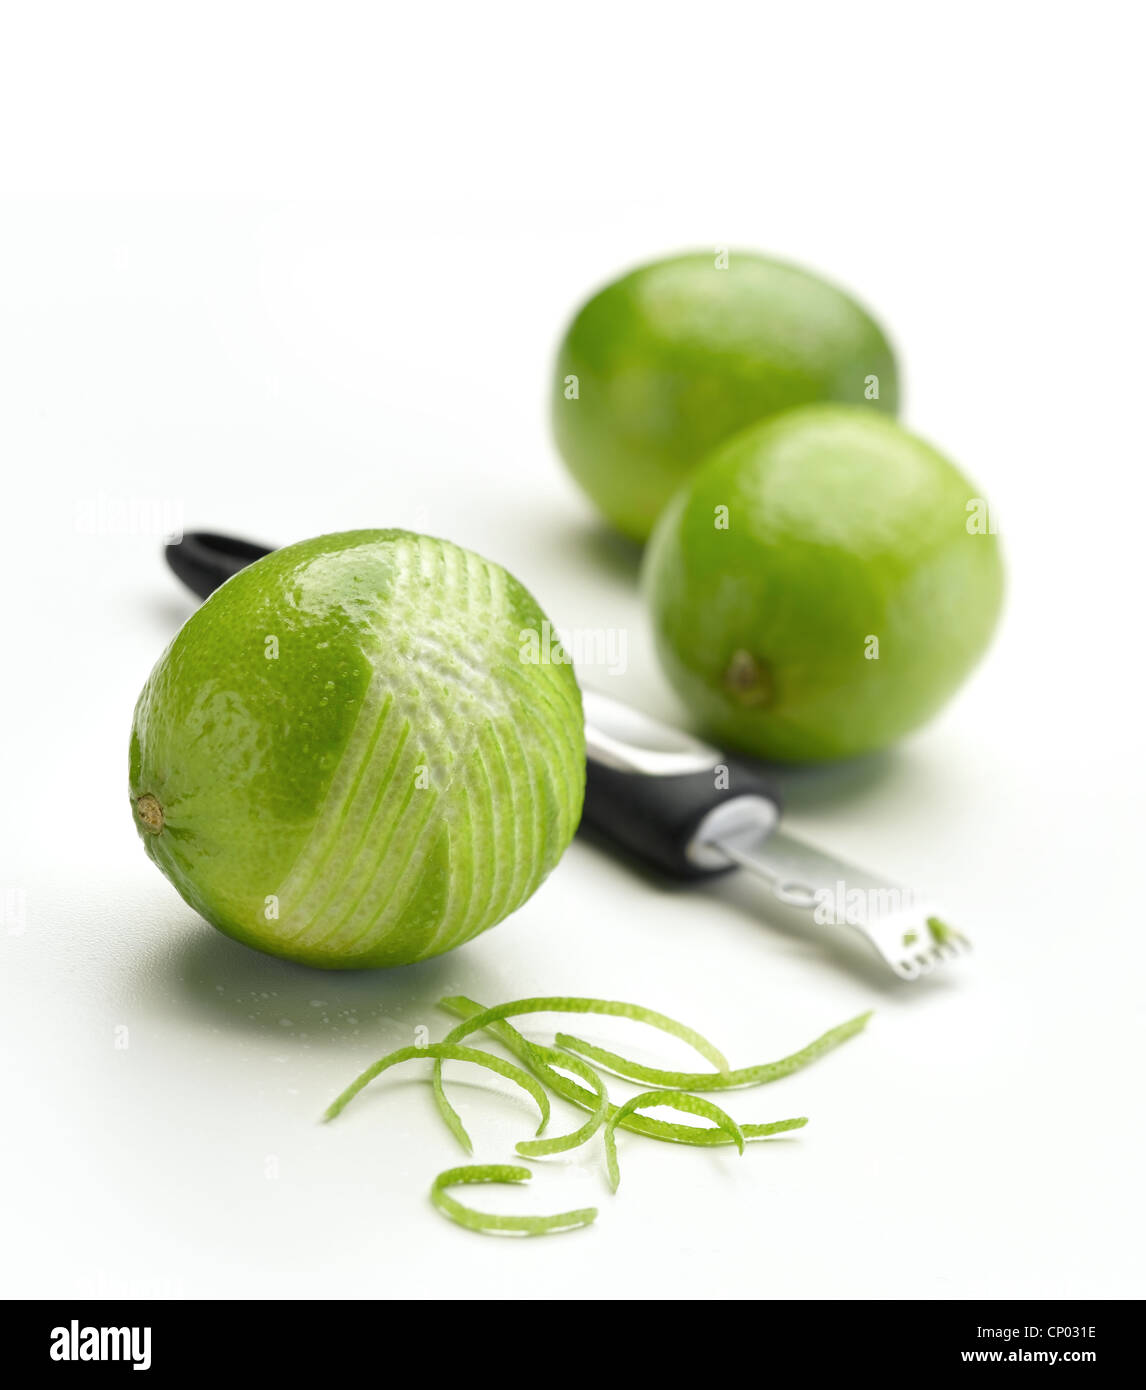 Lime Zesting - Stock Image